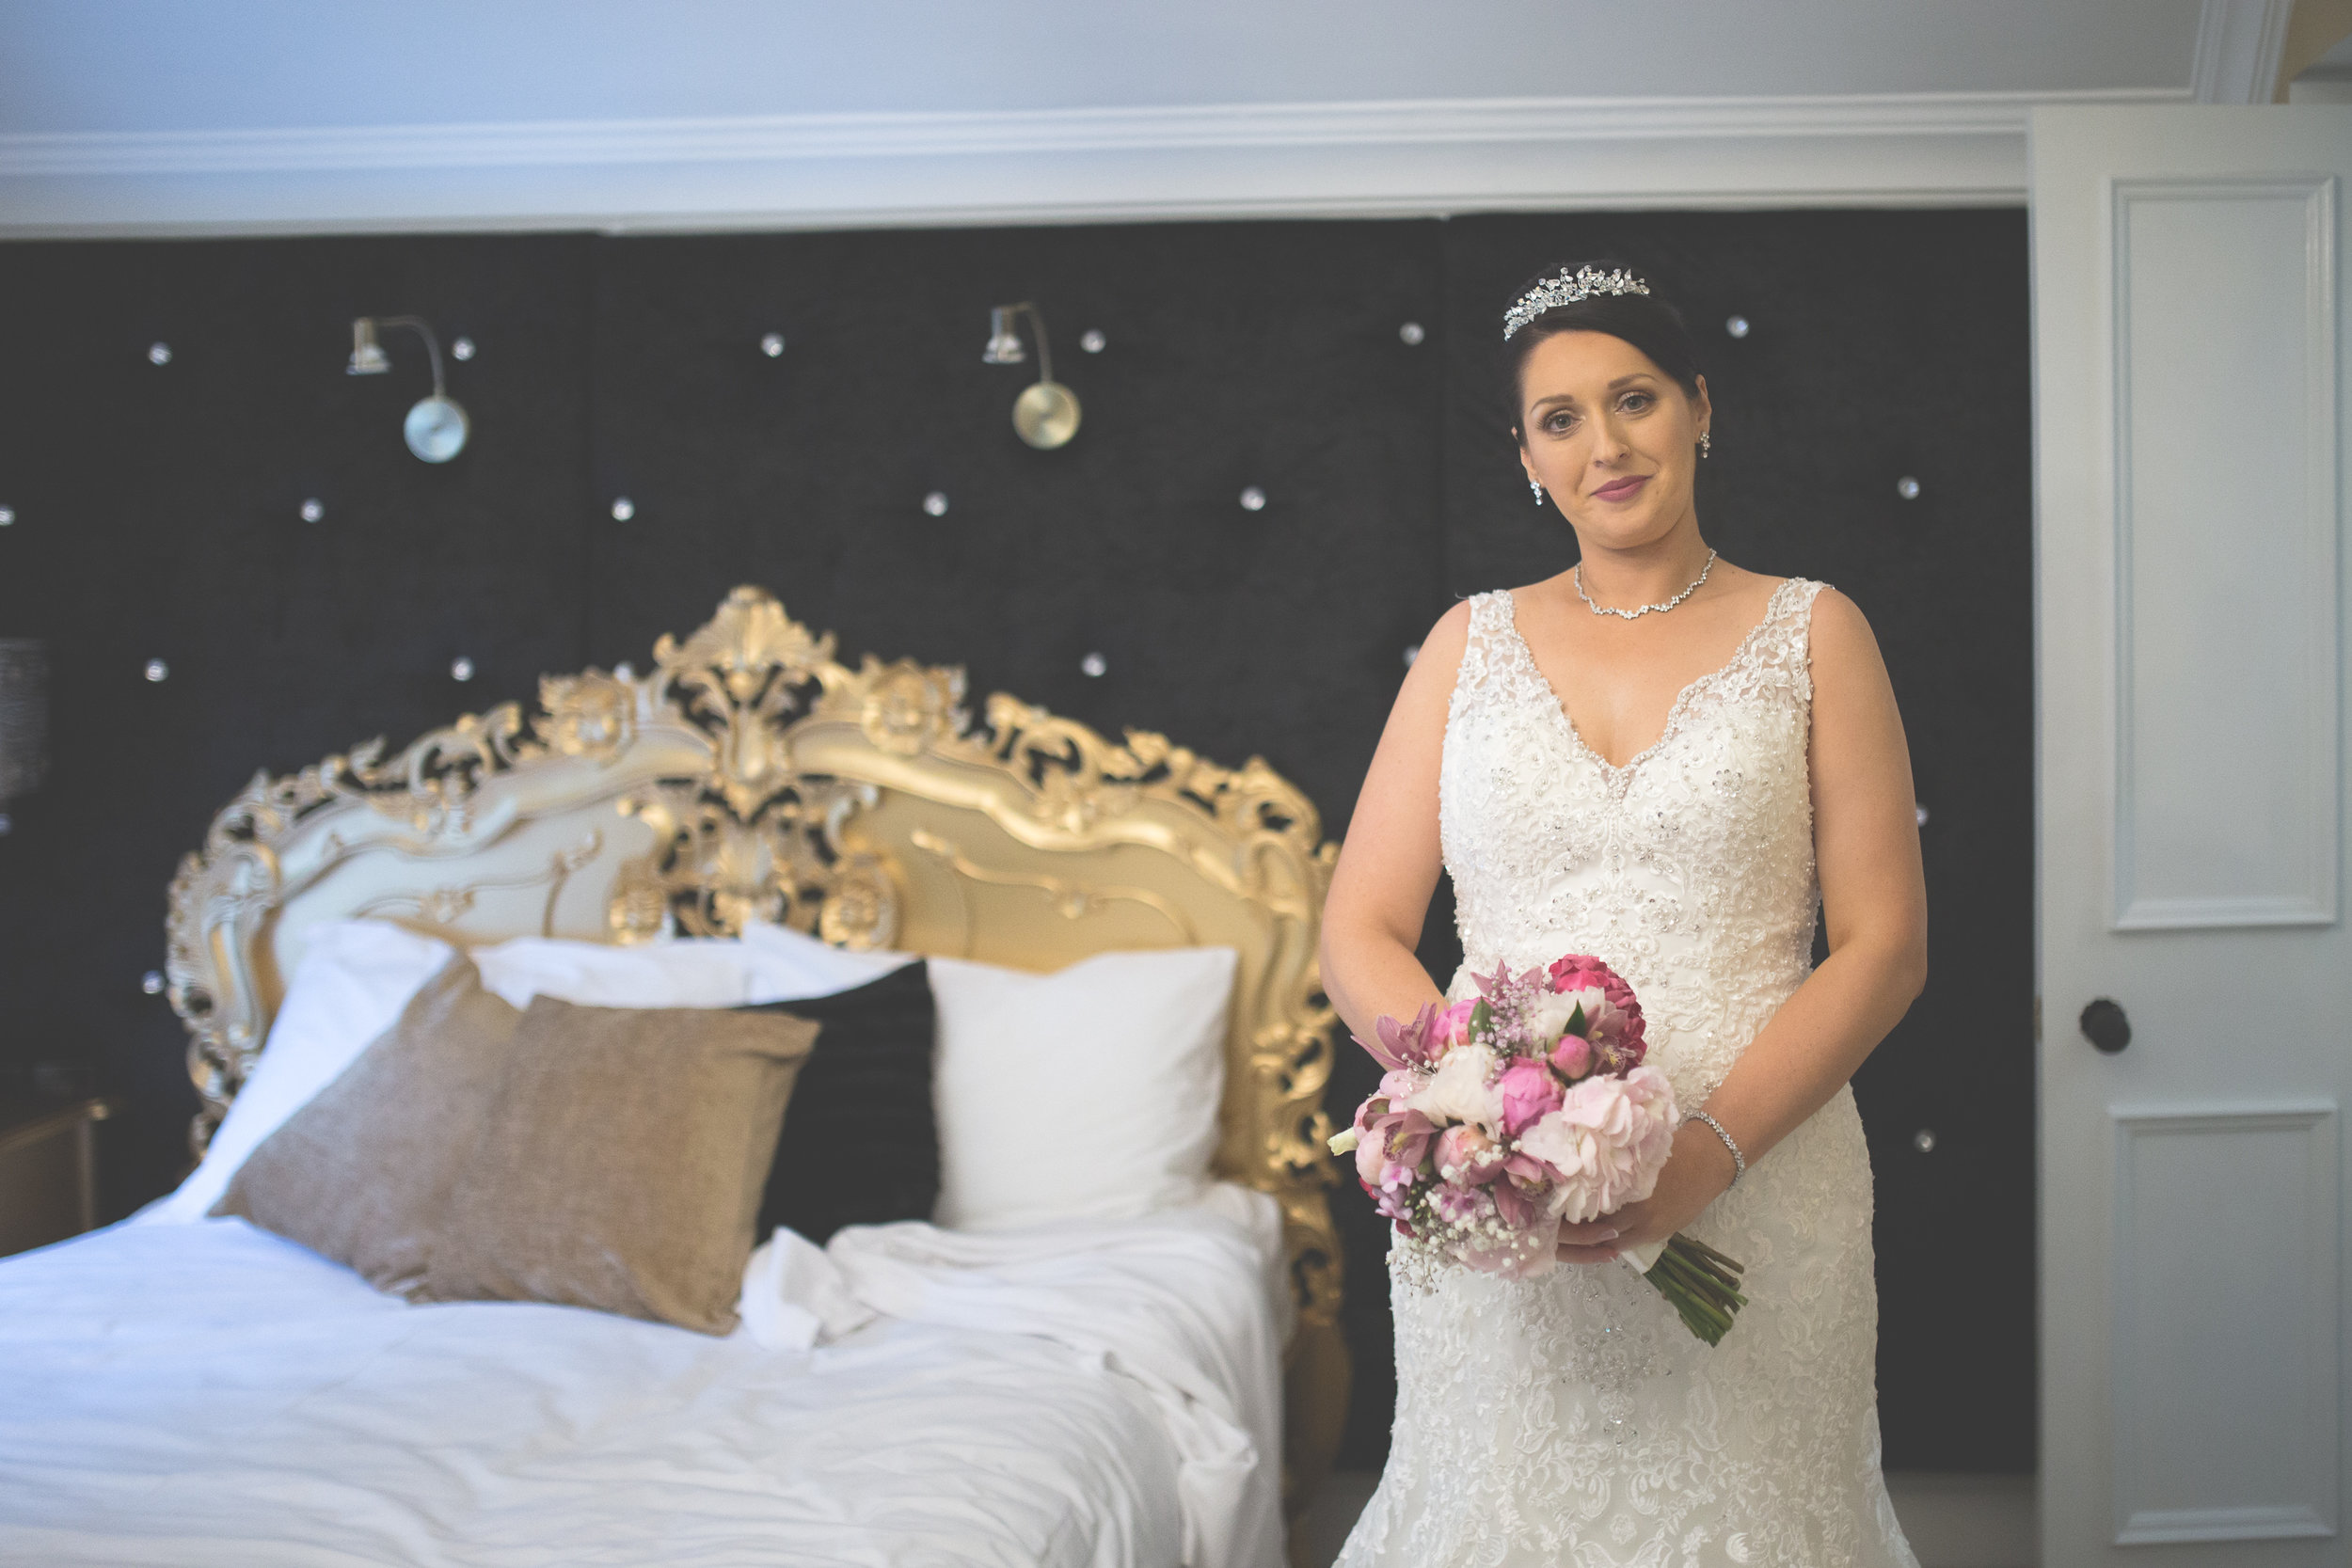 Northern Ireland Wedding Photographer | Brian McEwan | Louise & Darren-135.jpg